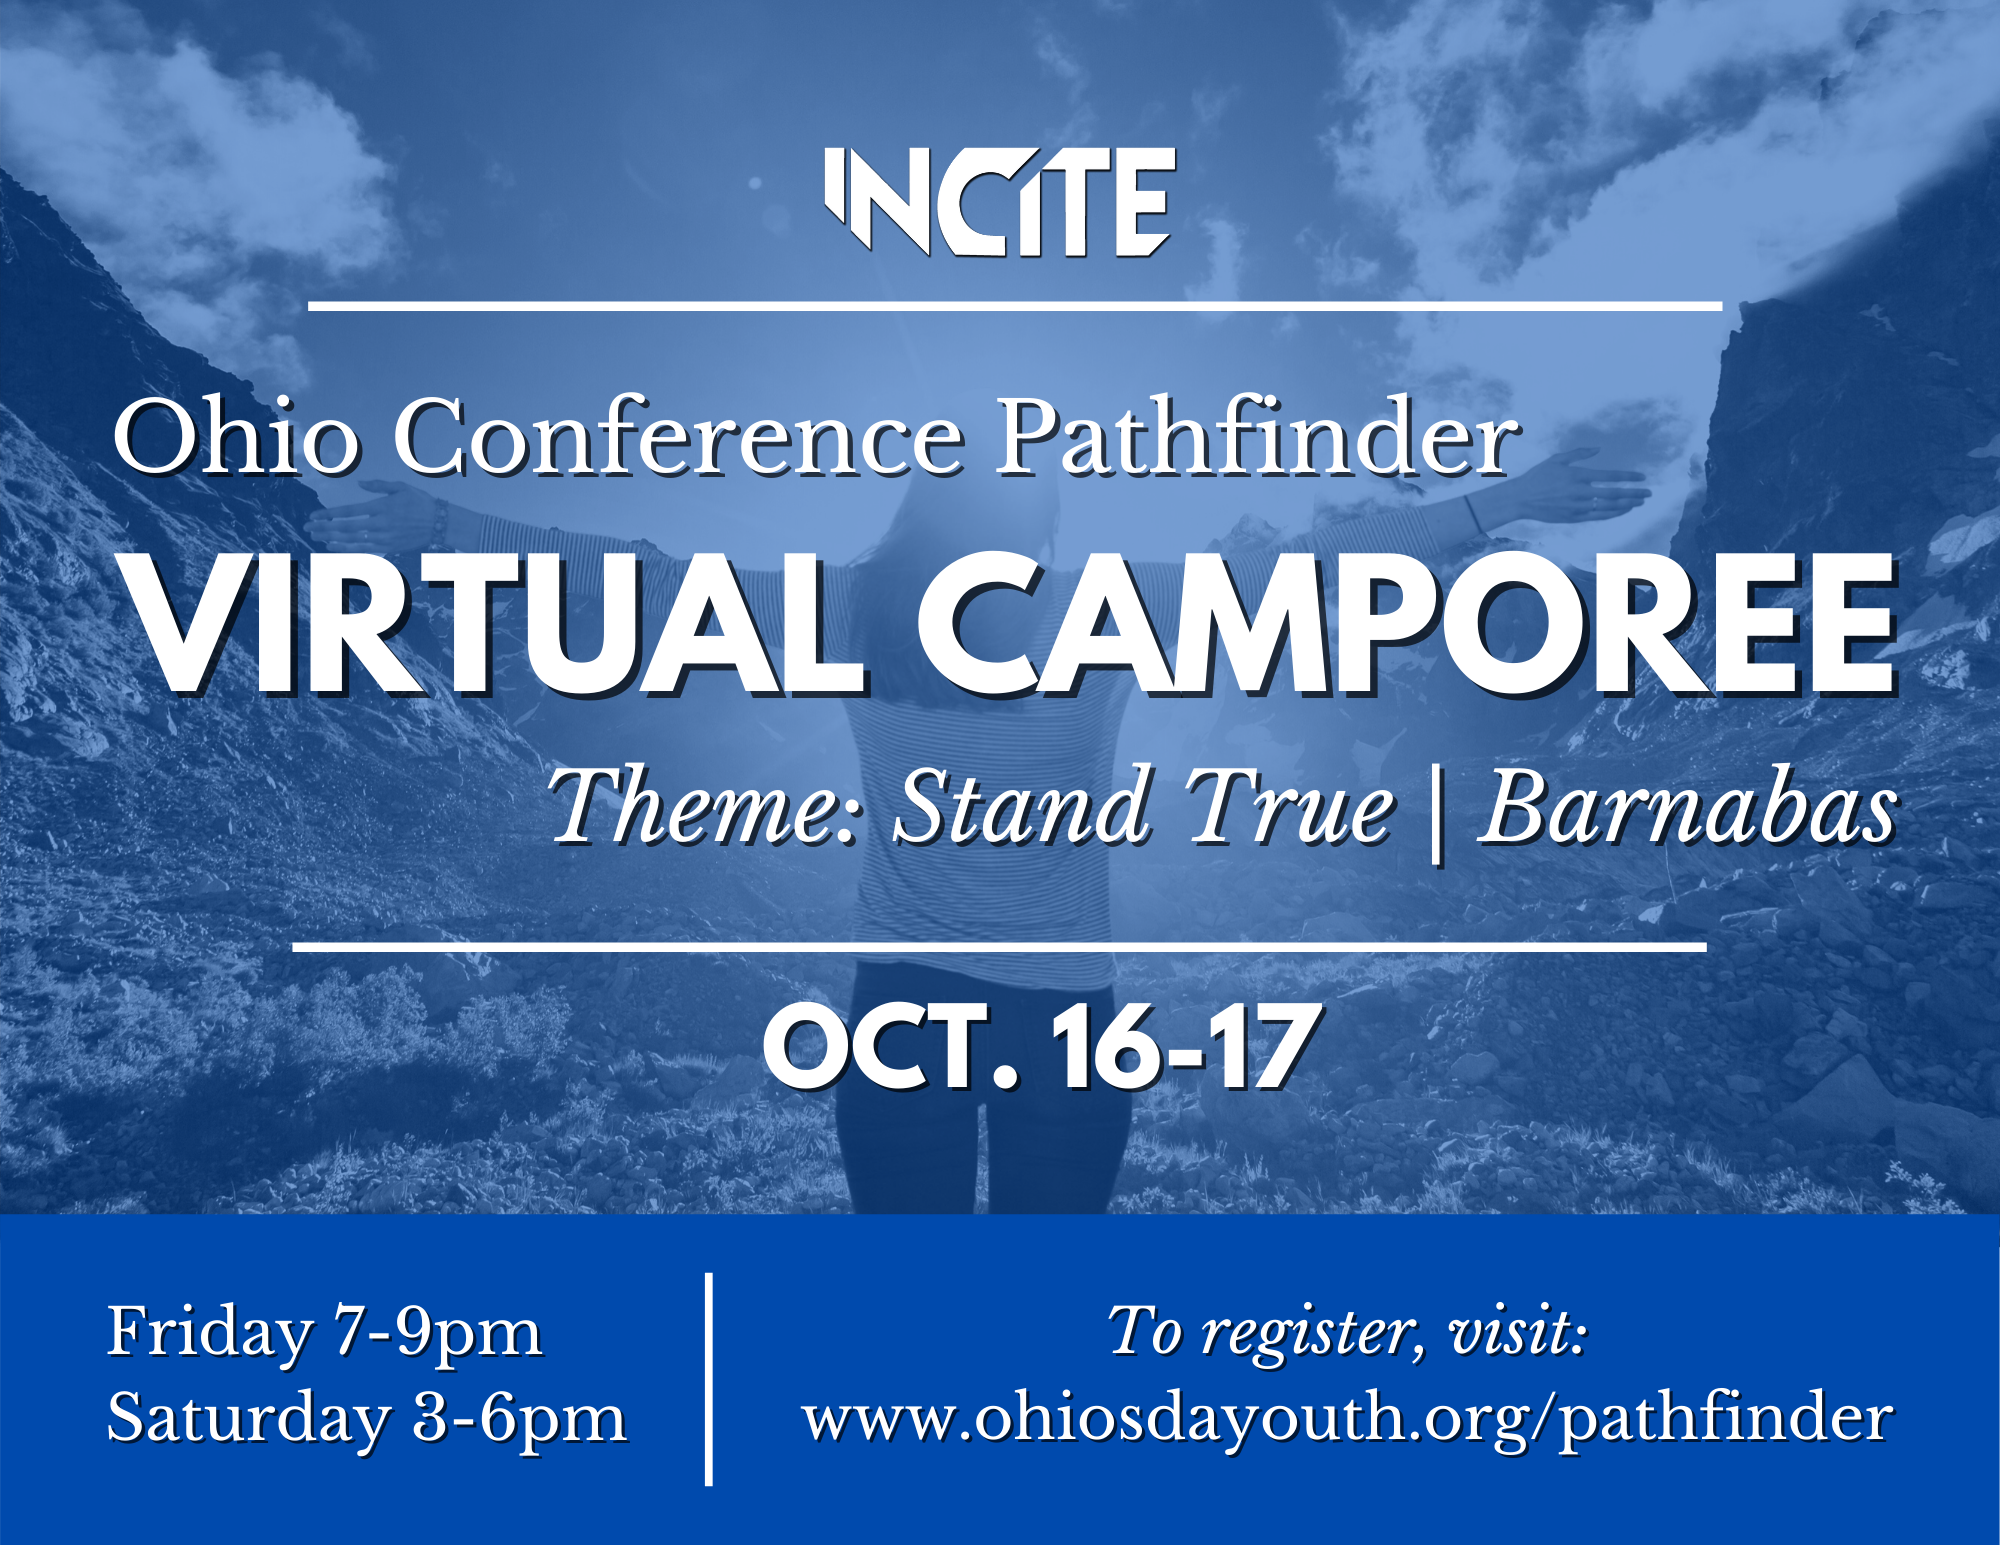 Virtual Camporee